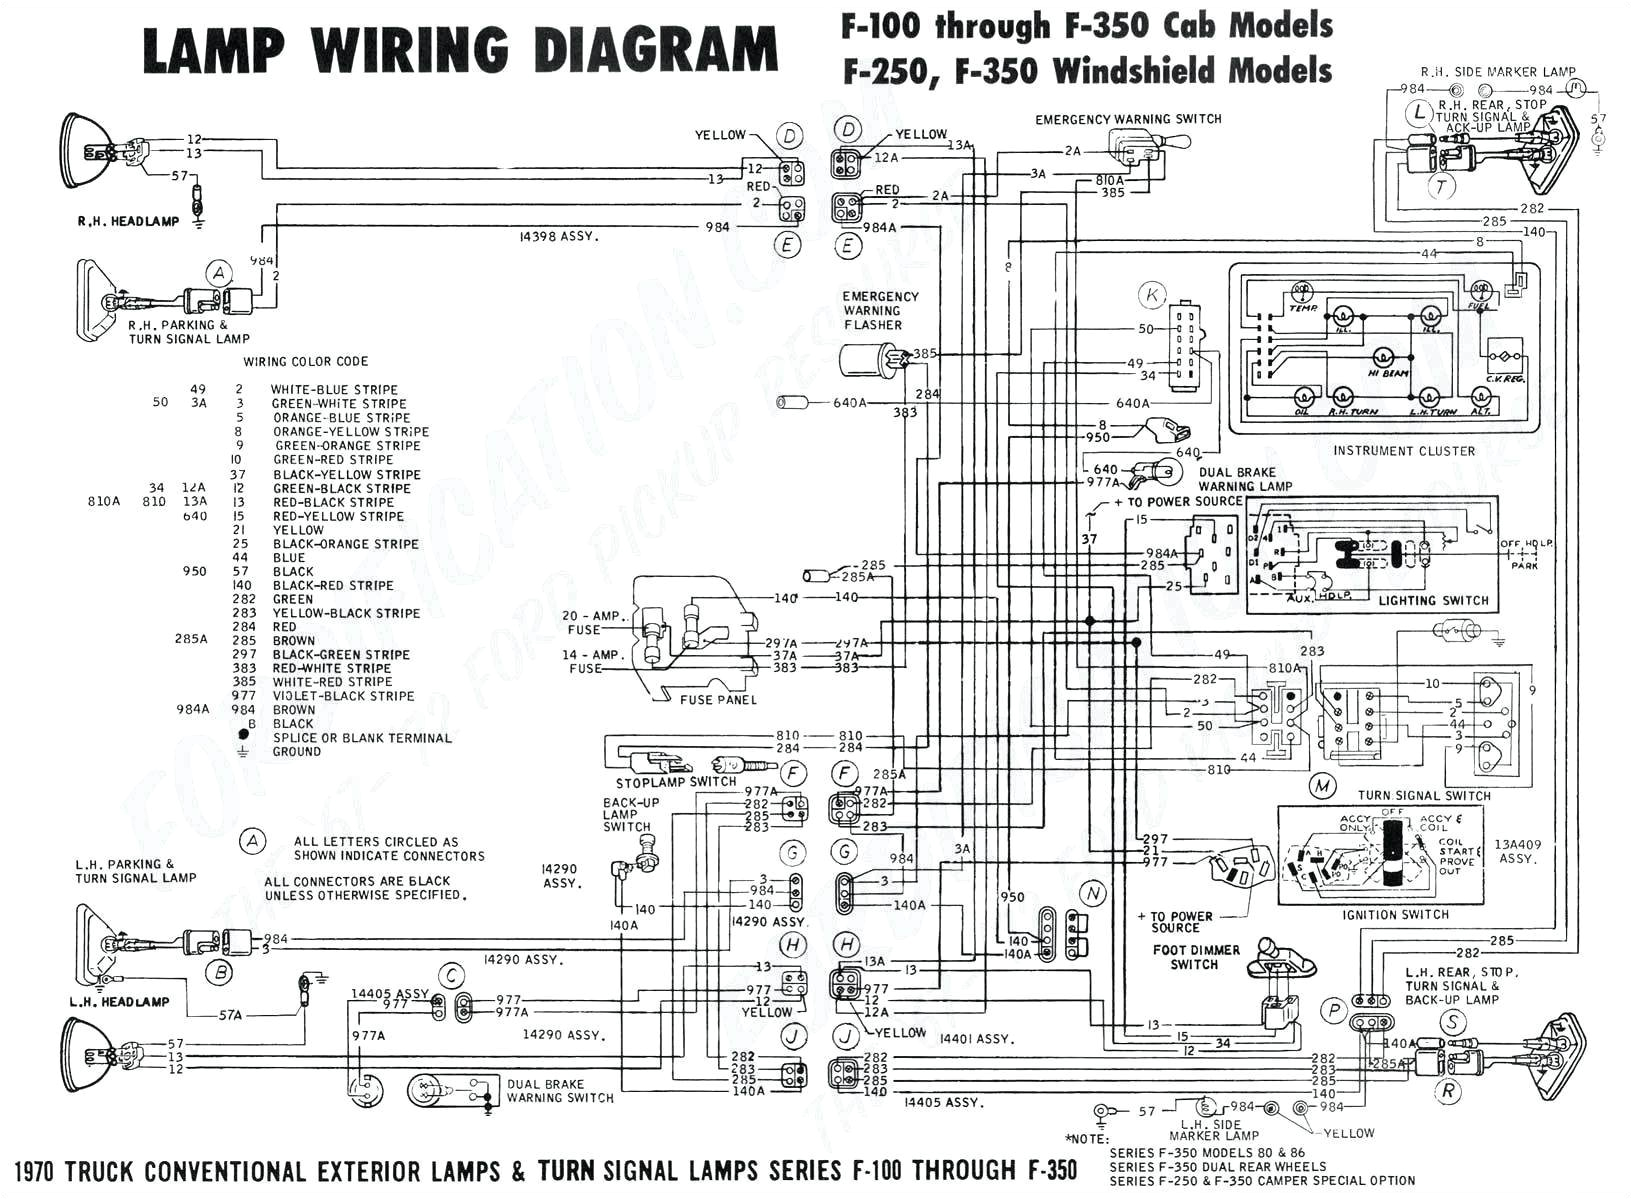 2007 international 4300 wiring diagram new international truck wiring diagram besides international truck fuse of 2007 international 4300 wiring diagram jpg